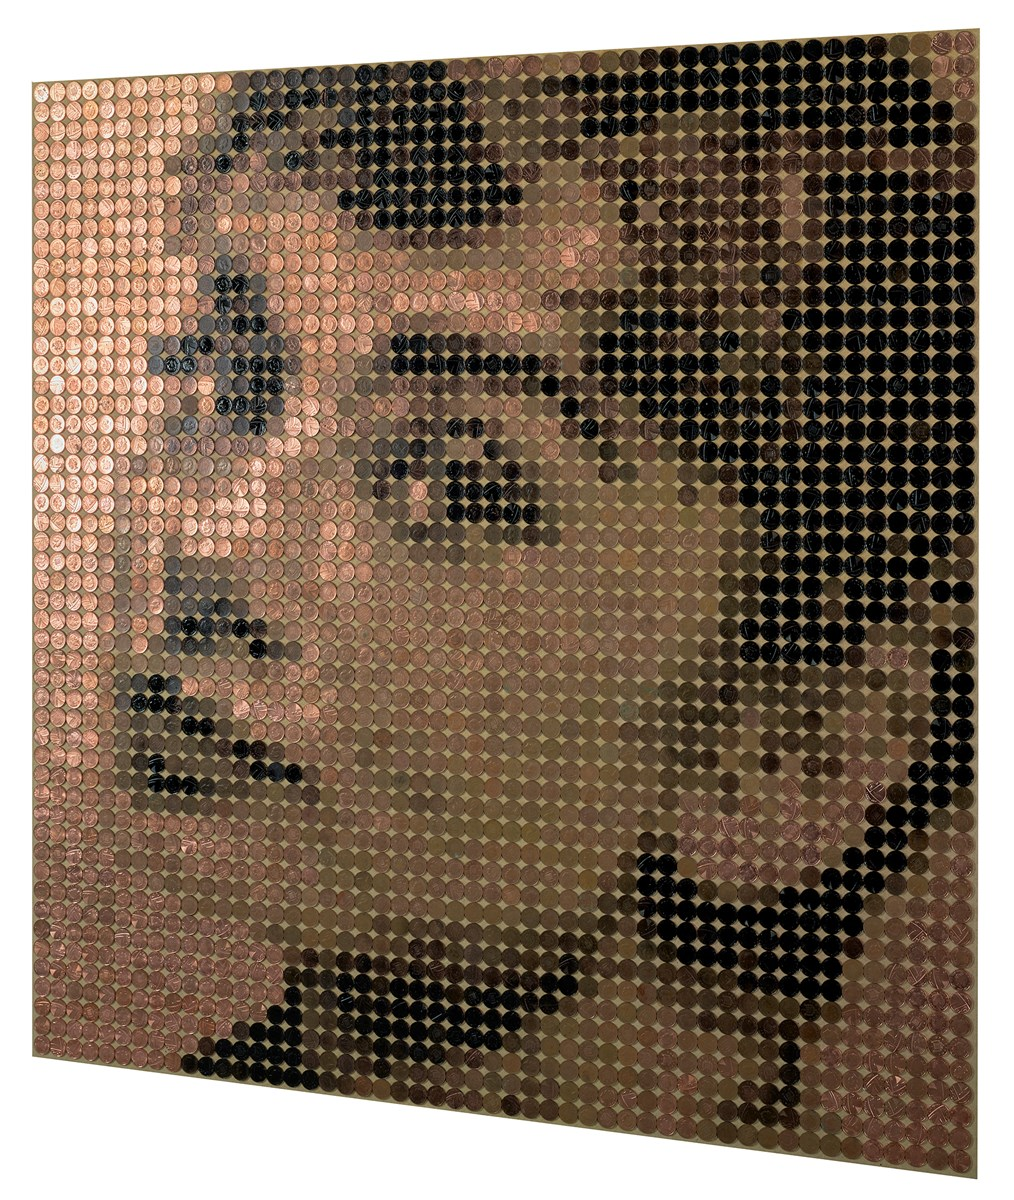 Audrey Hepburn II by ed chapman -  sized 41x41 inches. Available from Whitewall Galleries